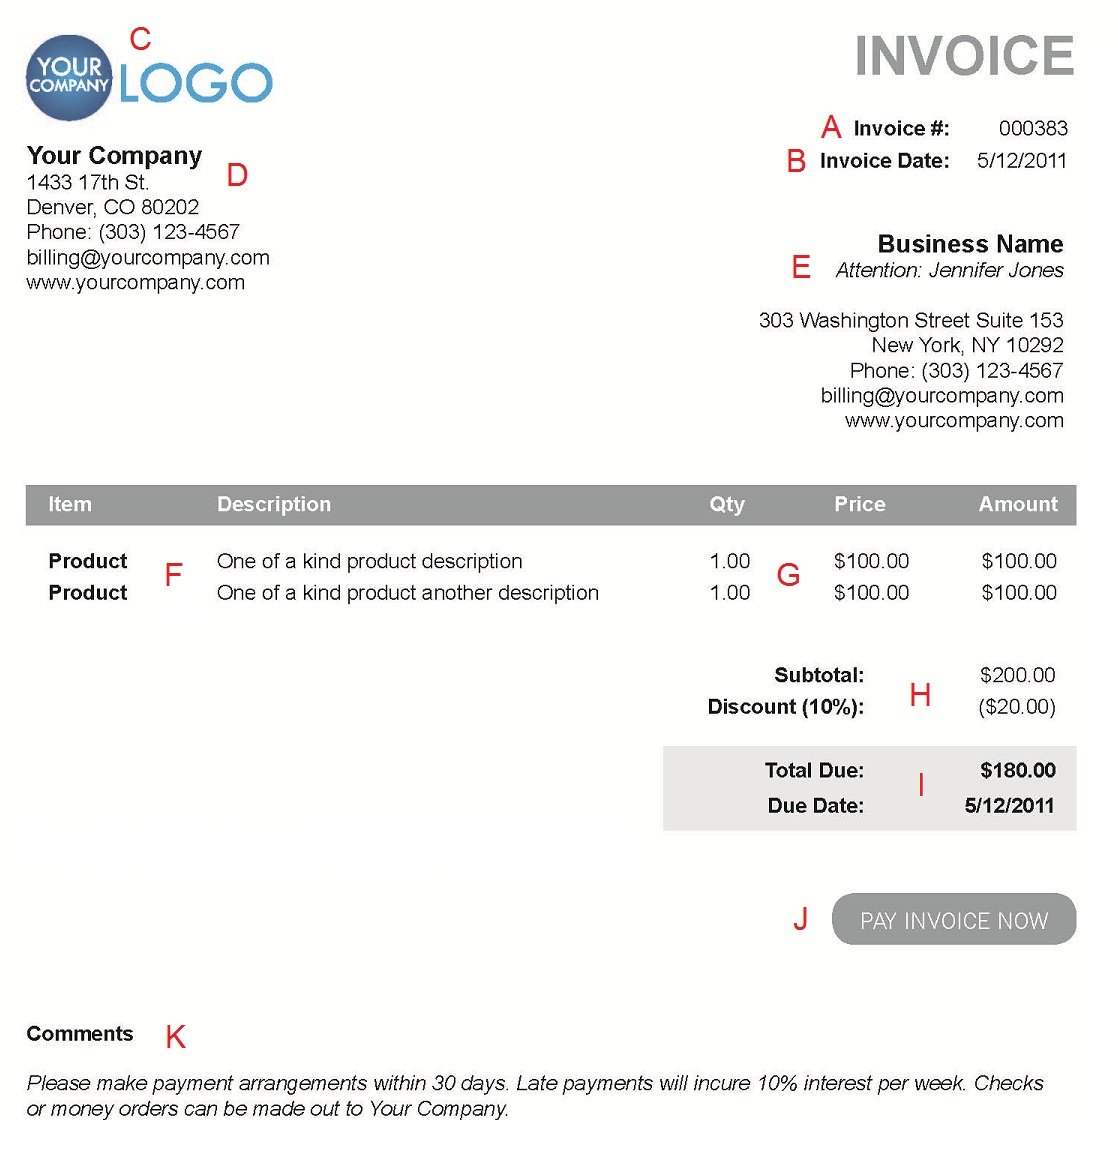 Opposenewapstandardsus  Sweet The  Different Sections Of An Electronic Payment Invoice With Goodlooking A  With Lovely Nissan Rogue Invoice Also Restaurant Invoice Template In Addition Free Proforma Invoice Template And Pro Invoice As Well As Best Invoice Program Additionally Invoice For Business From Paysimplecom With Opposenewapstandardsus  Goodlooking The  Different Sections Of An Electronic Payment Invoice With Lovely A  And Sweet Nissan Rogue Invoice Also Restaurant Invoice Template In Addition Free Proforma Invoice Template From Paysimplecom